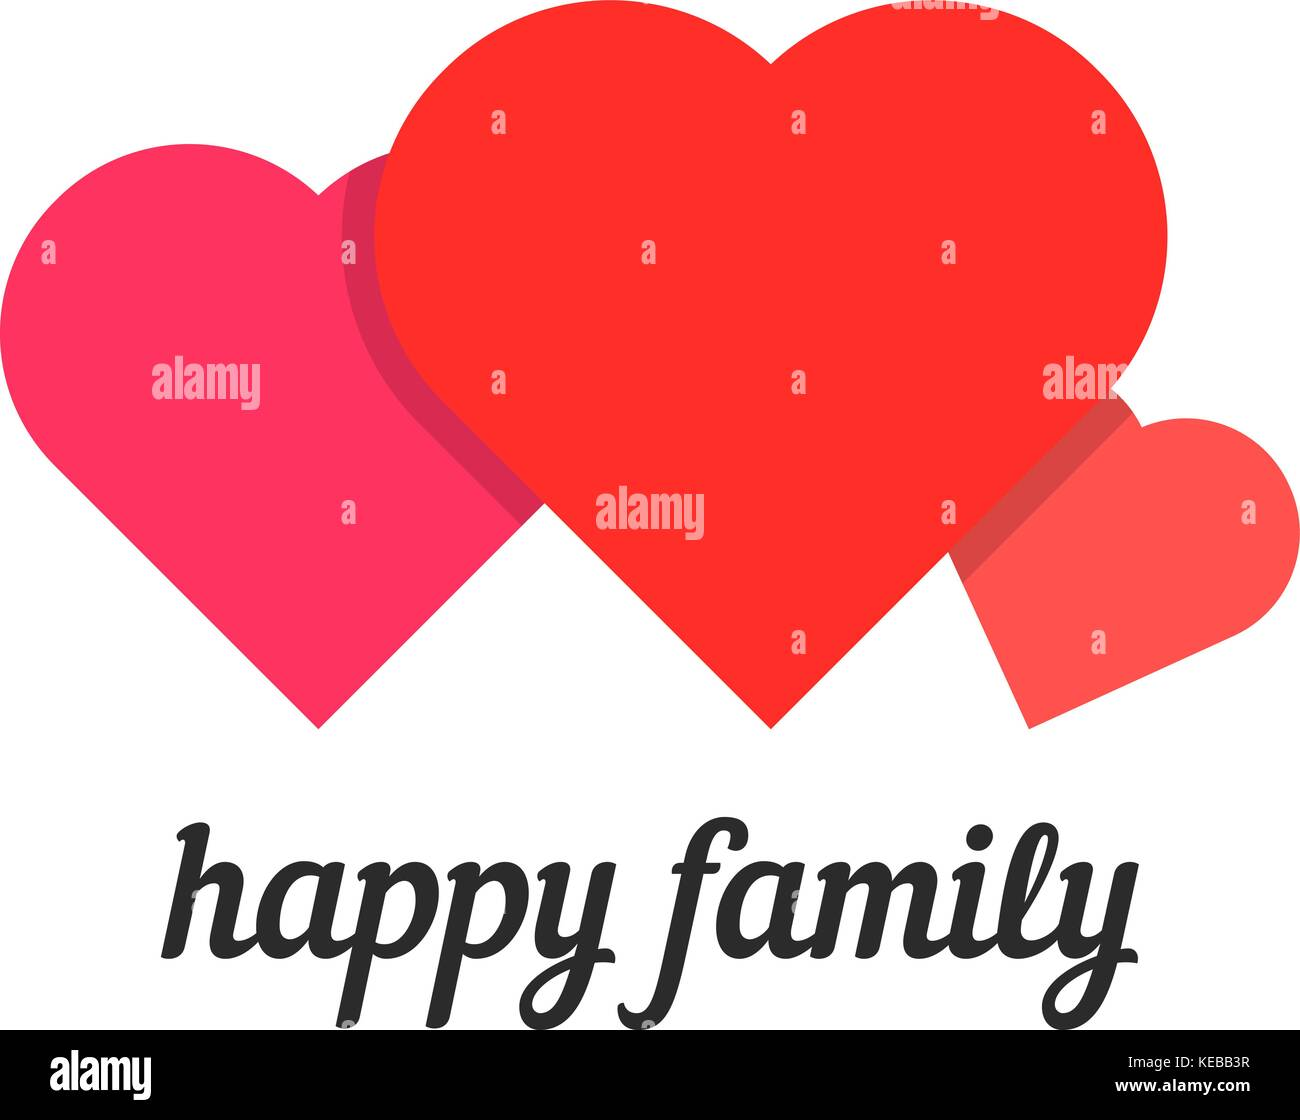 happy family with three hearts - Stock Vector